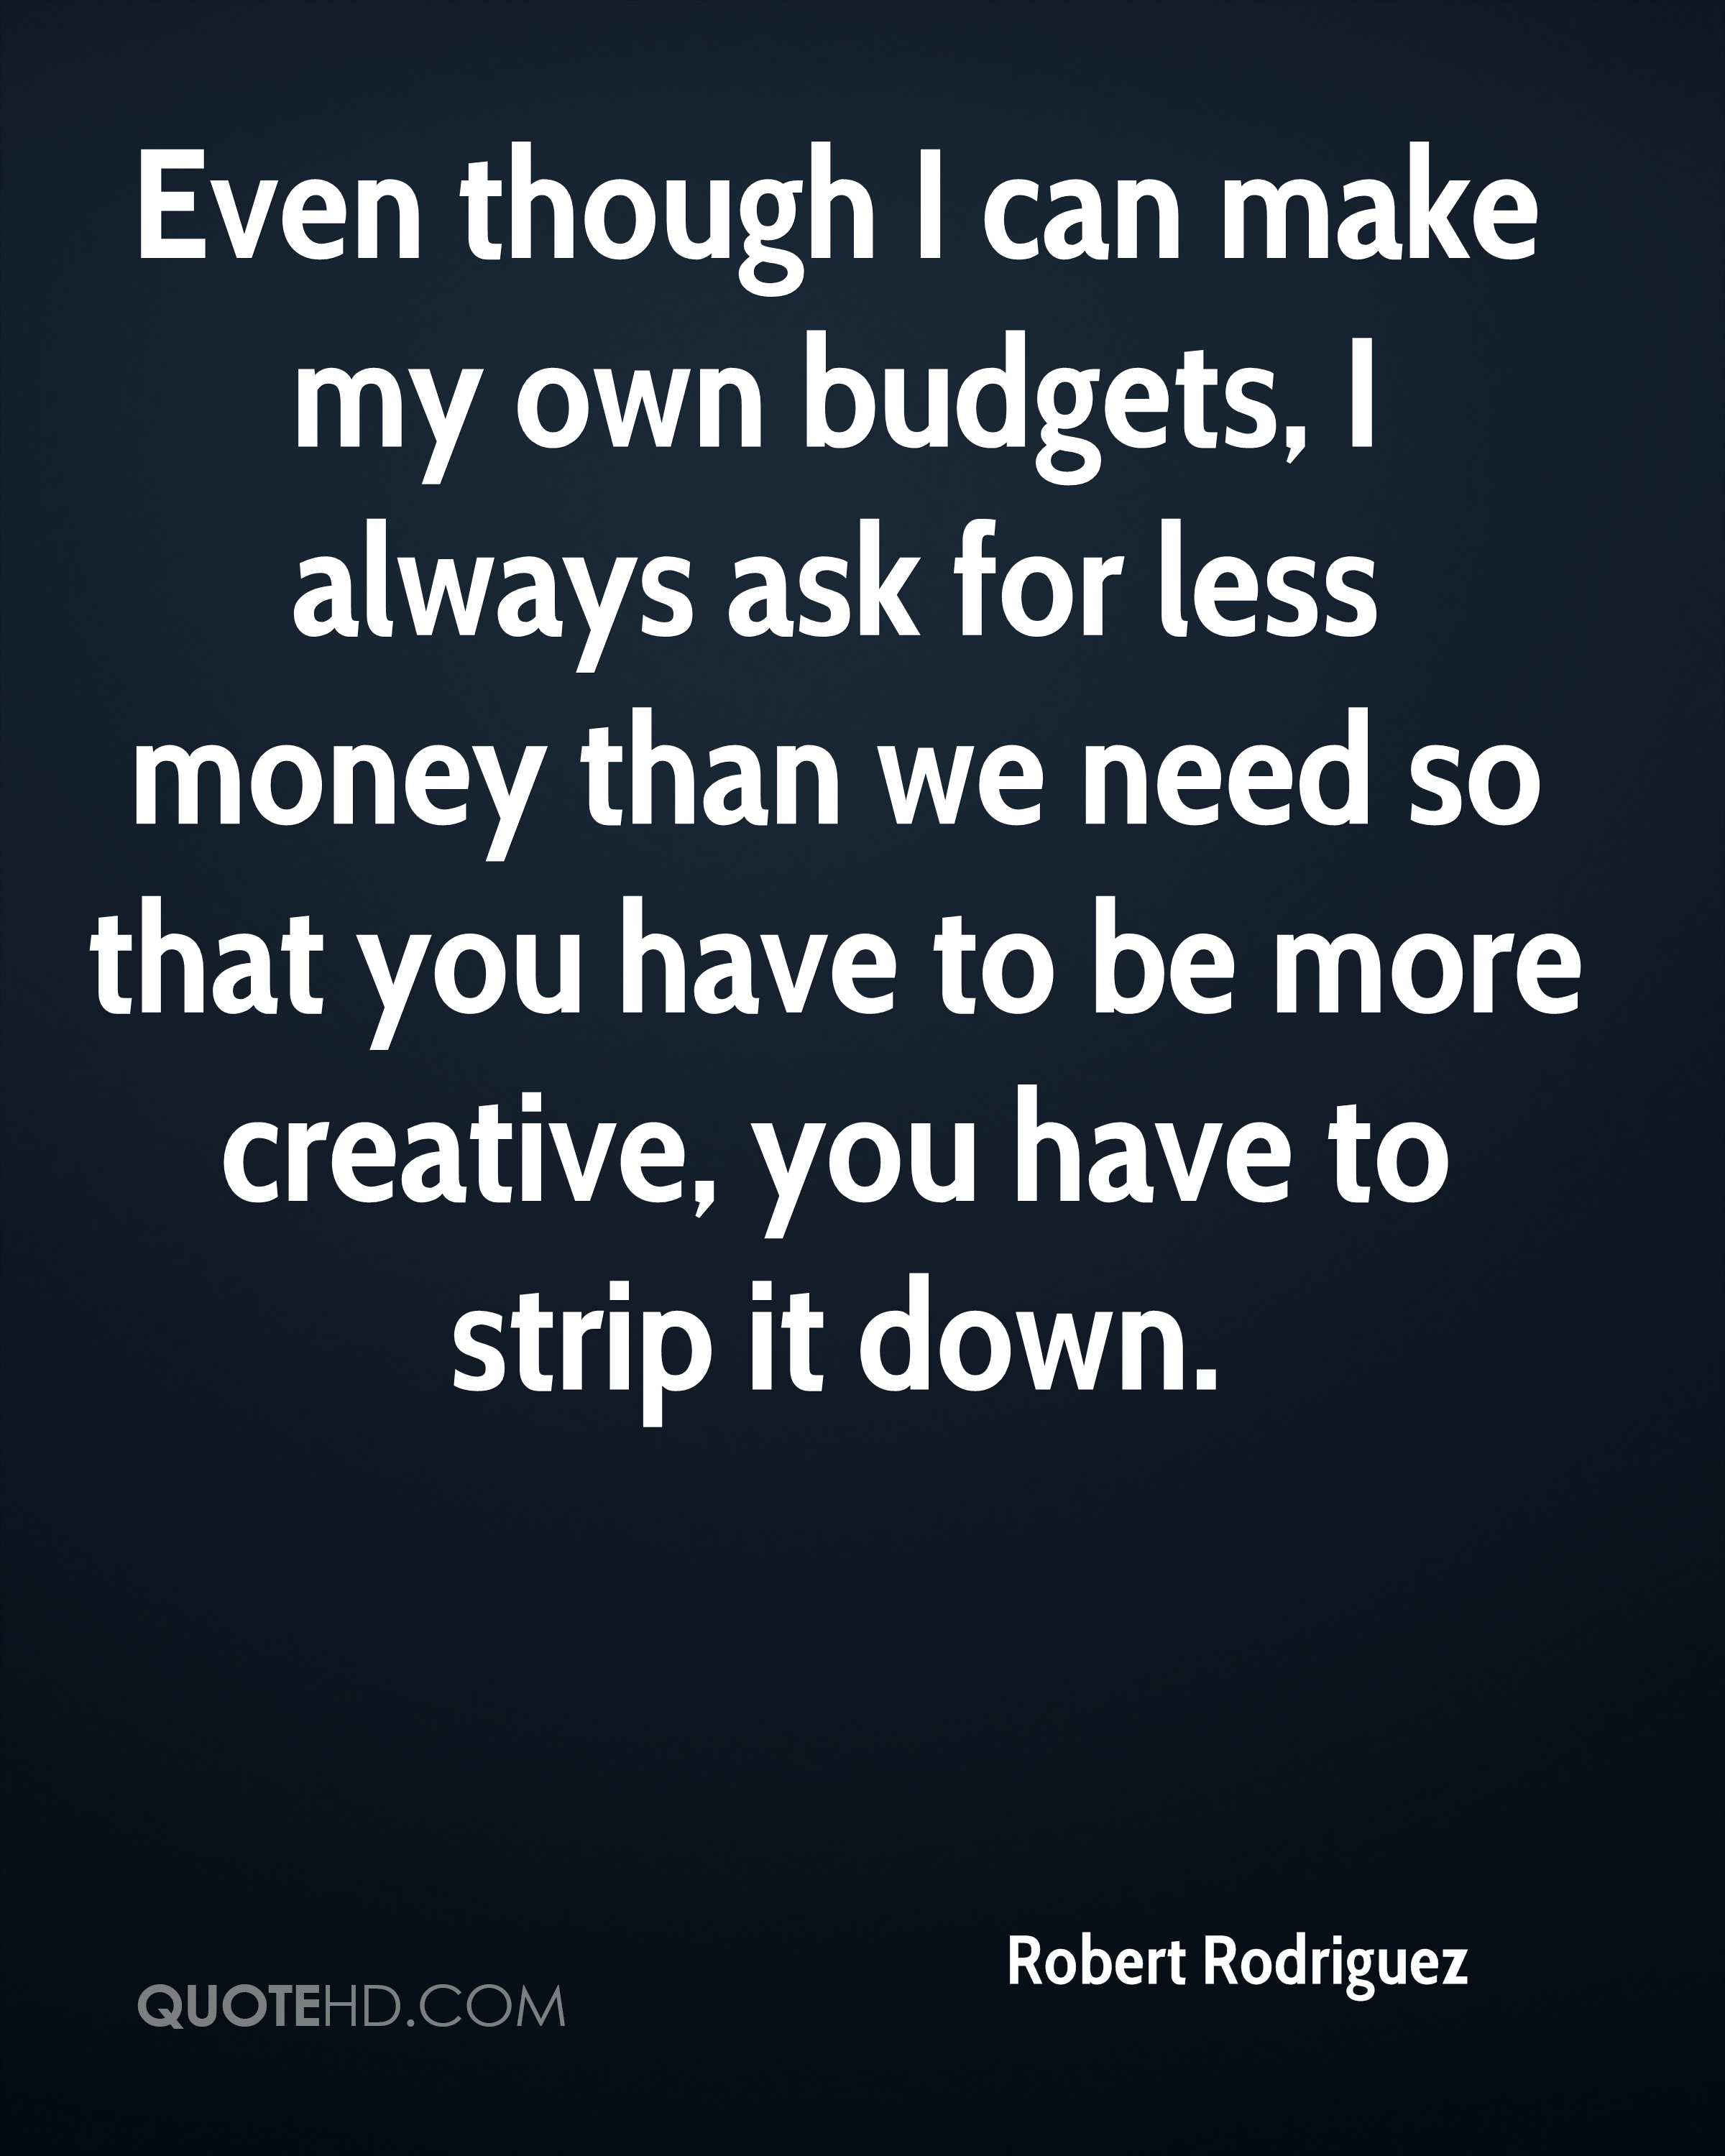 Even though I can make my own budgets, I always ask for less money than we need so that you have to be more creative, you have to strip it down.